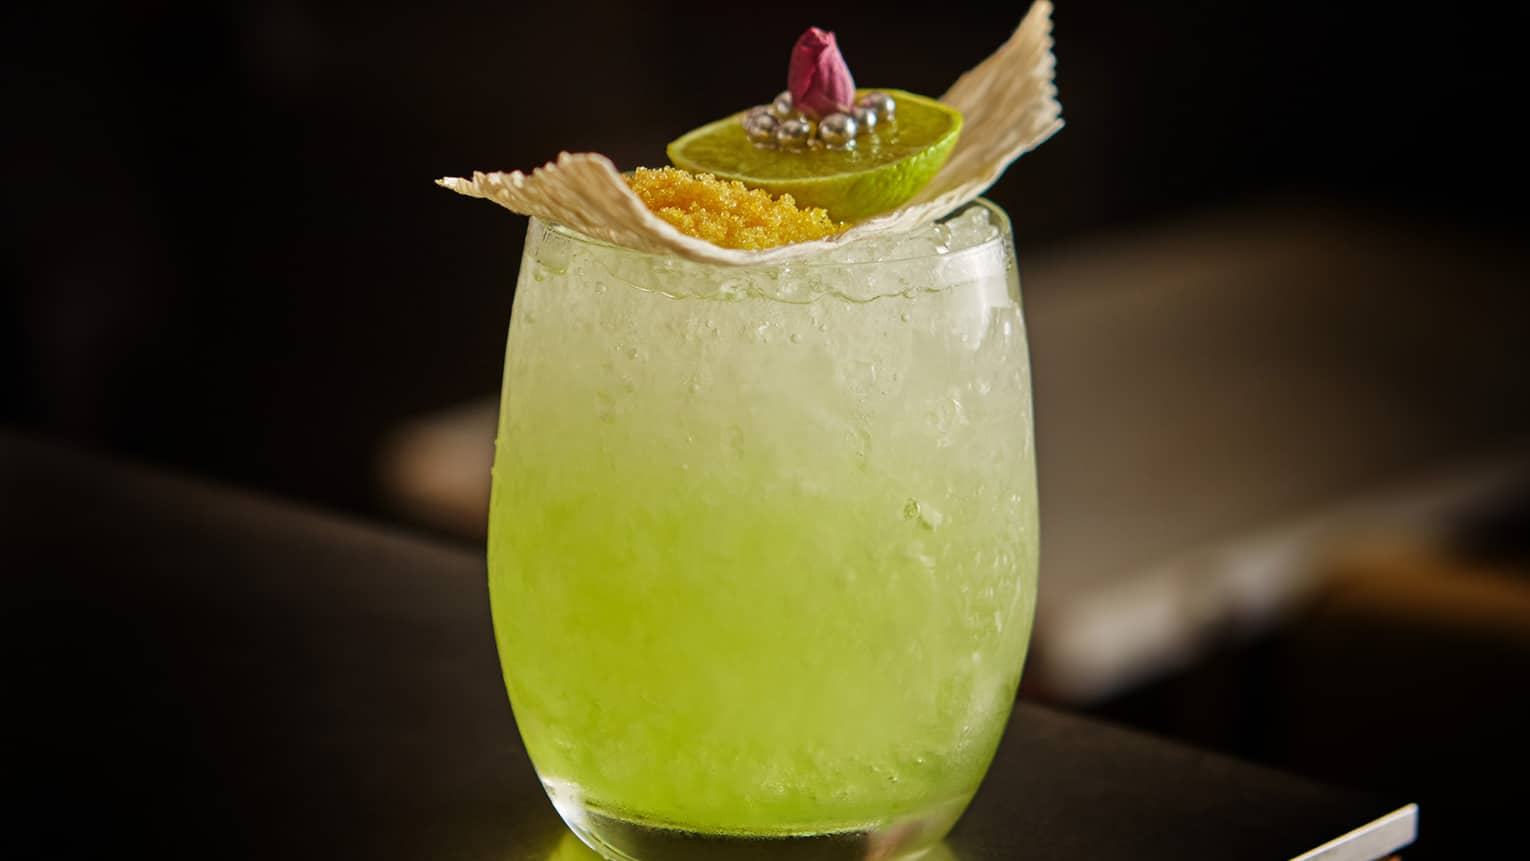 Bright-green Capri cocktail with lime garnish